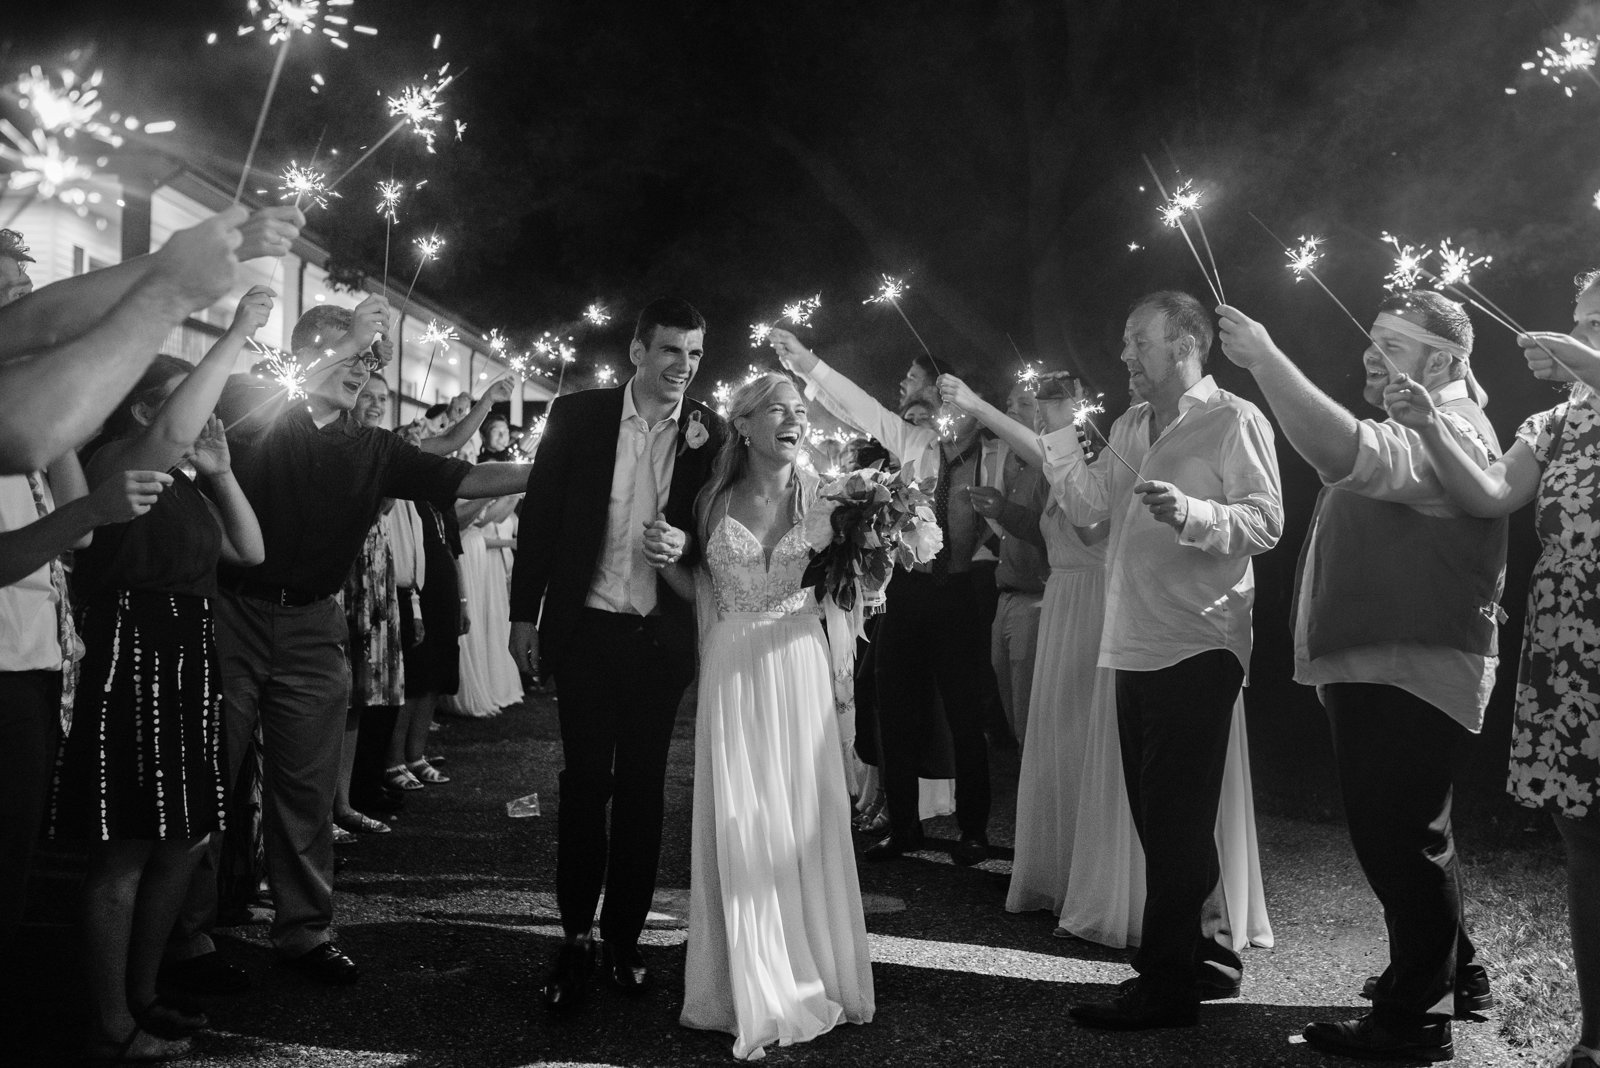 Minnesota Wedding Sparklers Exit 1913 bw